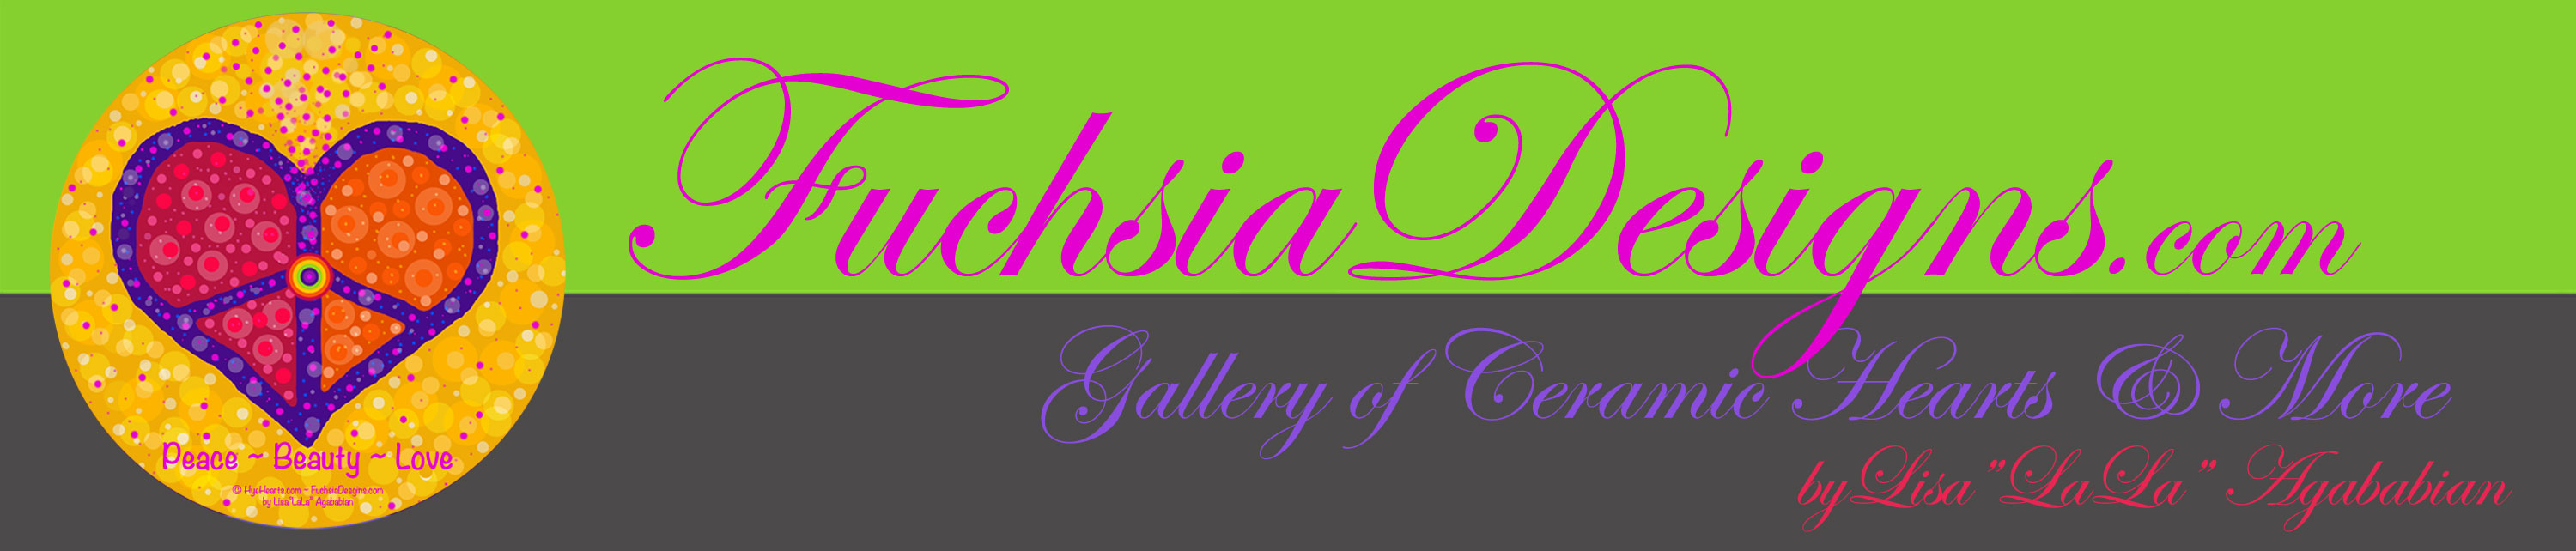 FuchsiaDesigns.com Banner and Link to Home Page